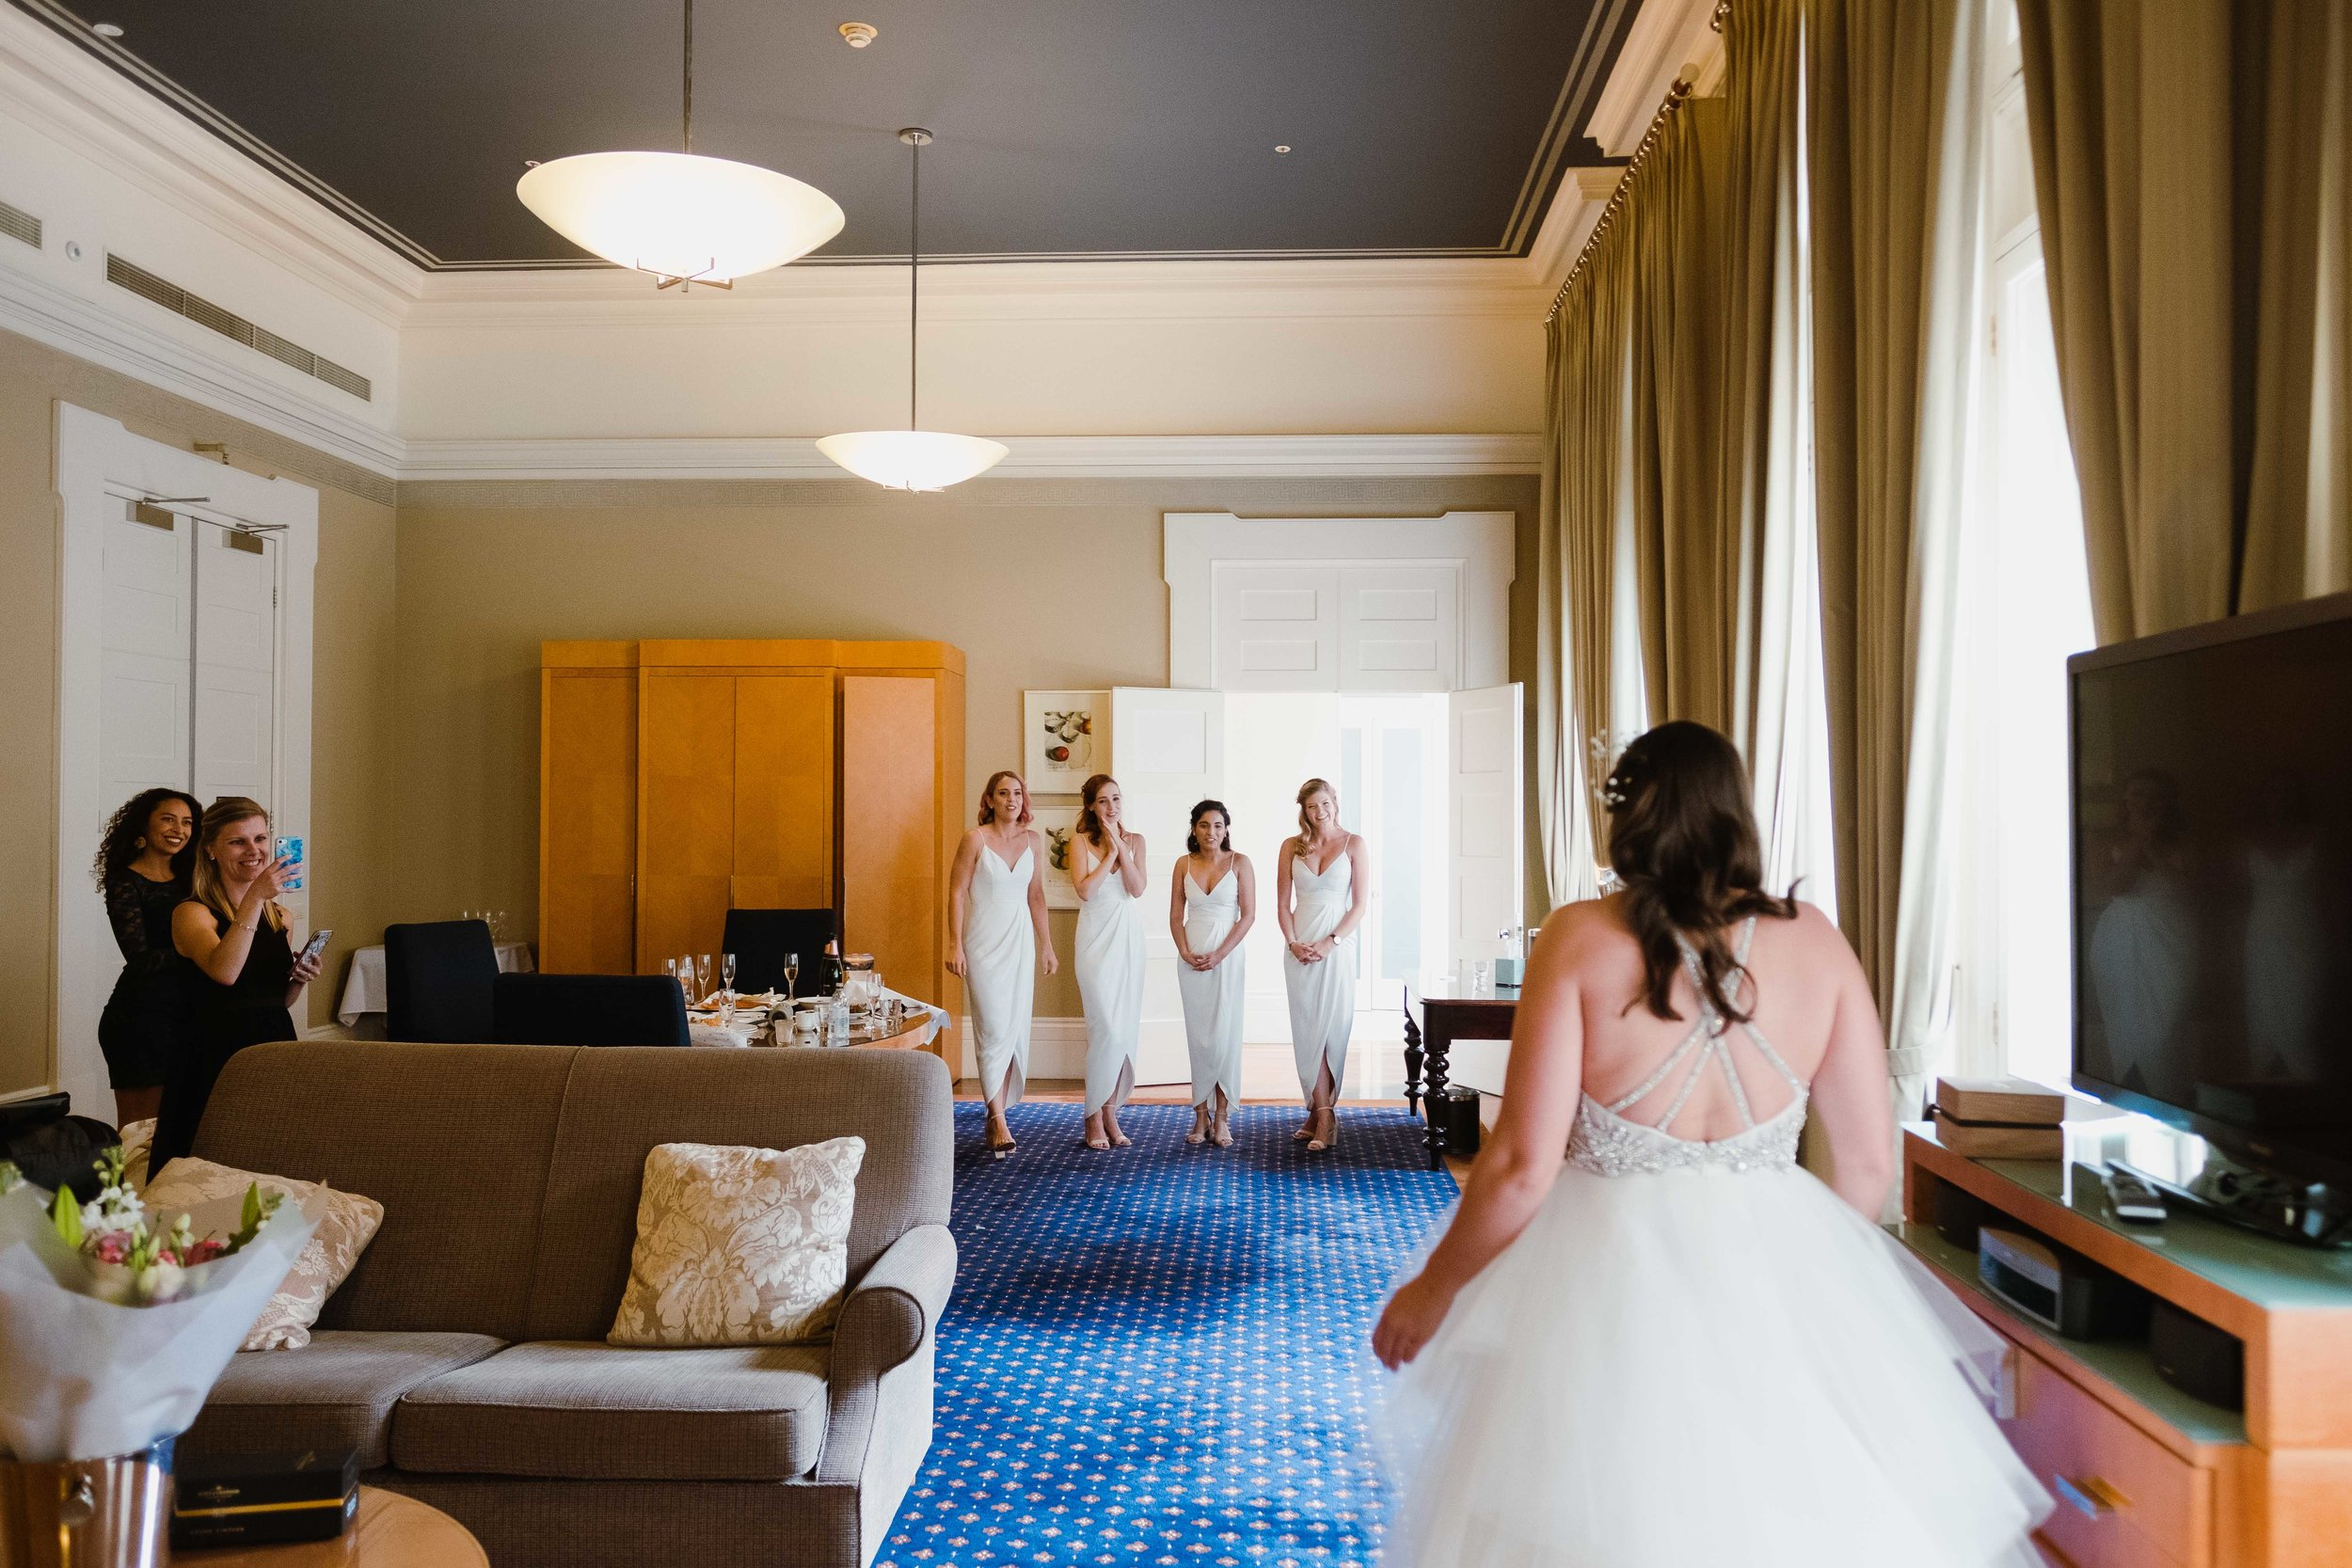 Miriam and Tom Balmoral Beach and Public Dining Room Wedding by Milton Gan Photography 5.jpg